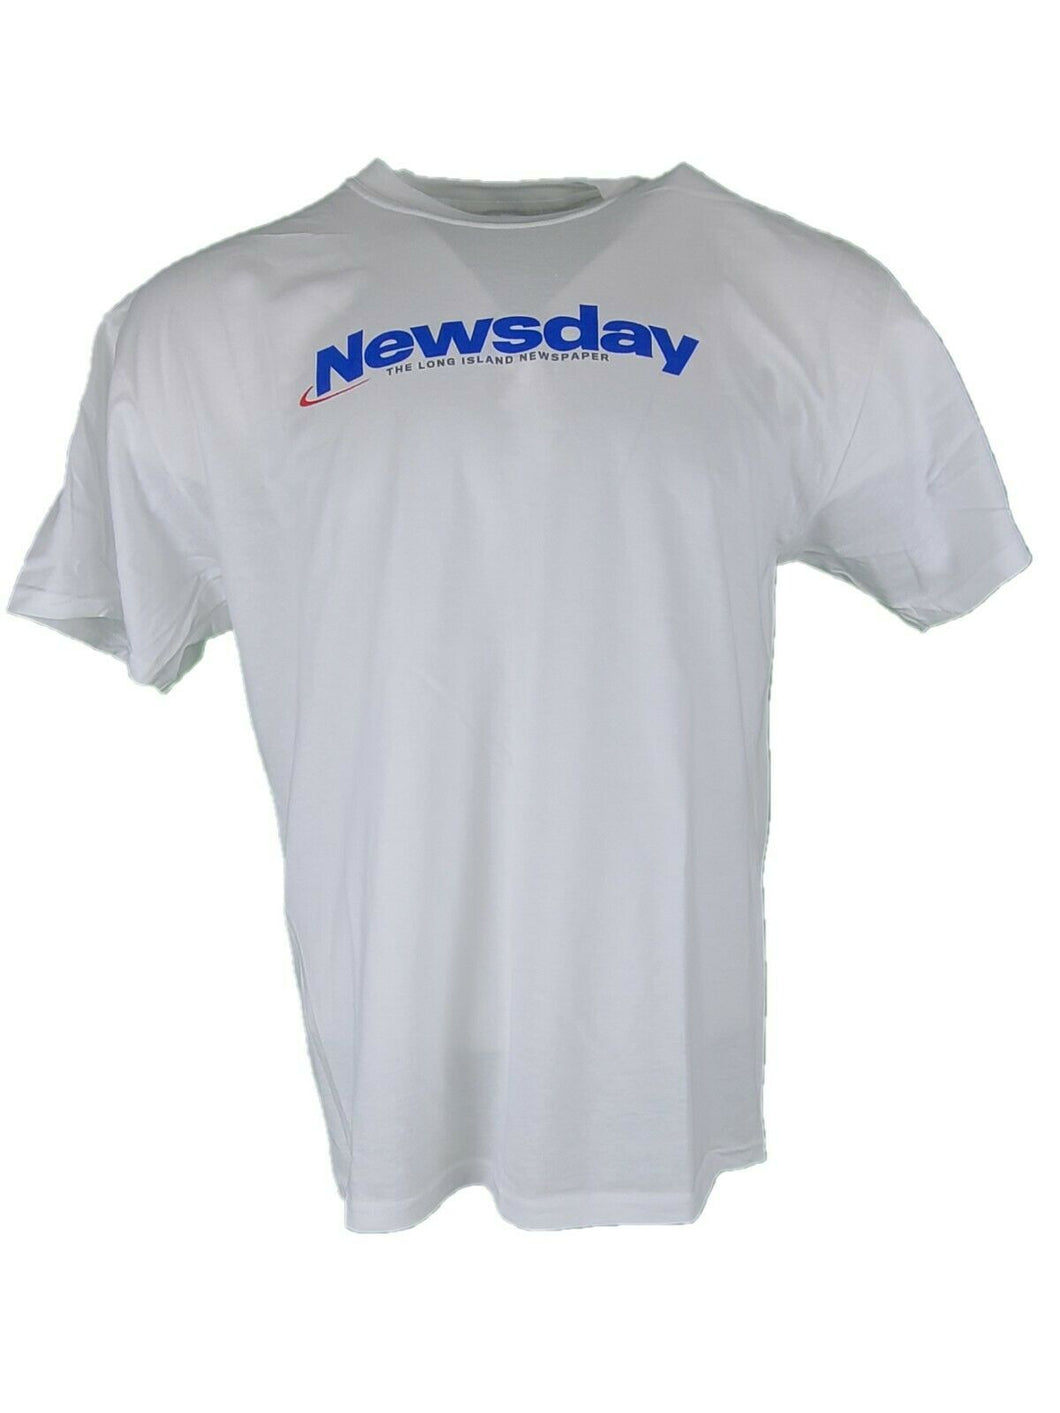 Long Island  Newsday  T Shirt XL New White With Logo